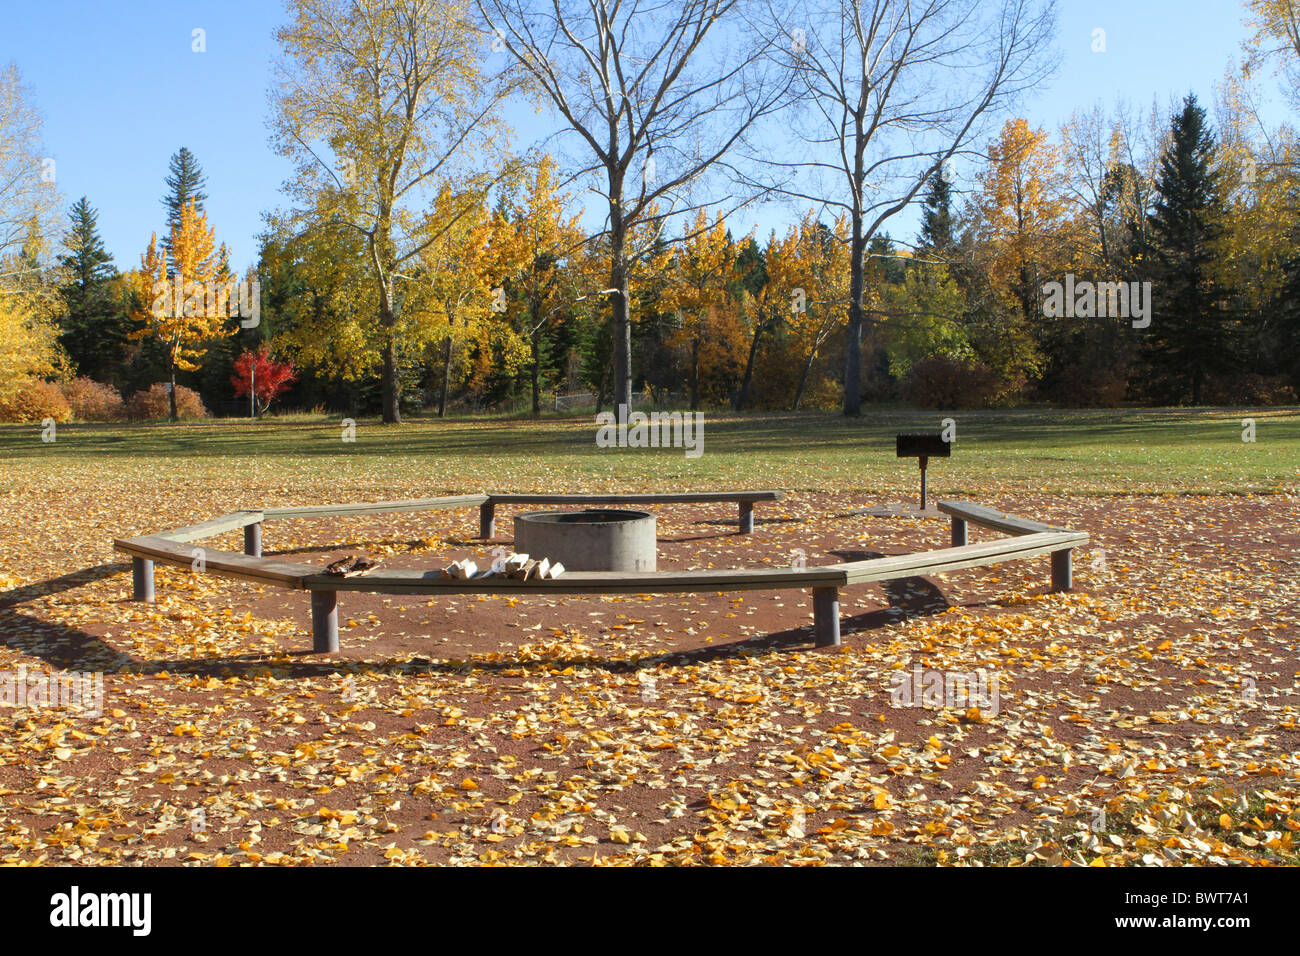 Pleasing Autumn Colours And Park Benches And Picnic Tables In The Caraccident5 Cool Chair Designs And Ideas Caraccident5Info